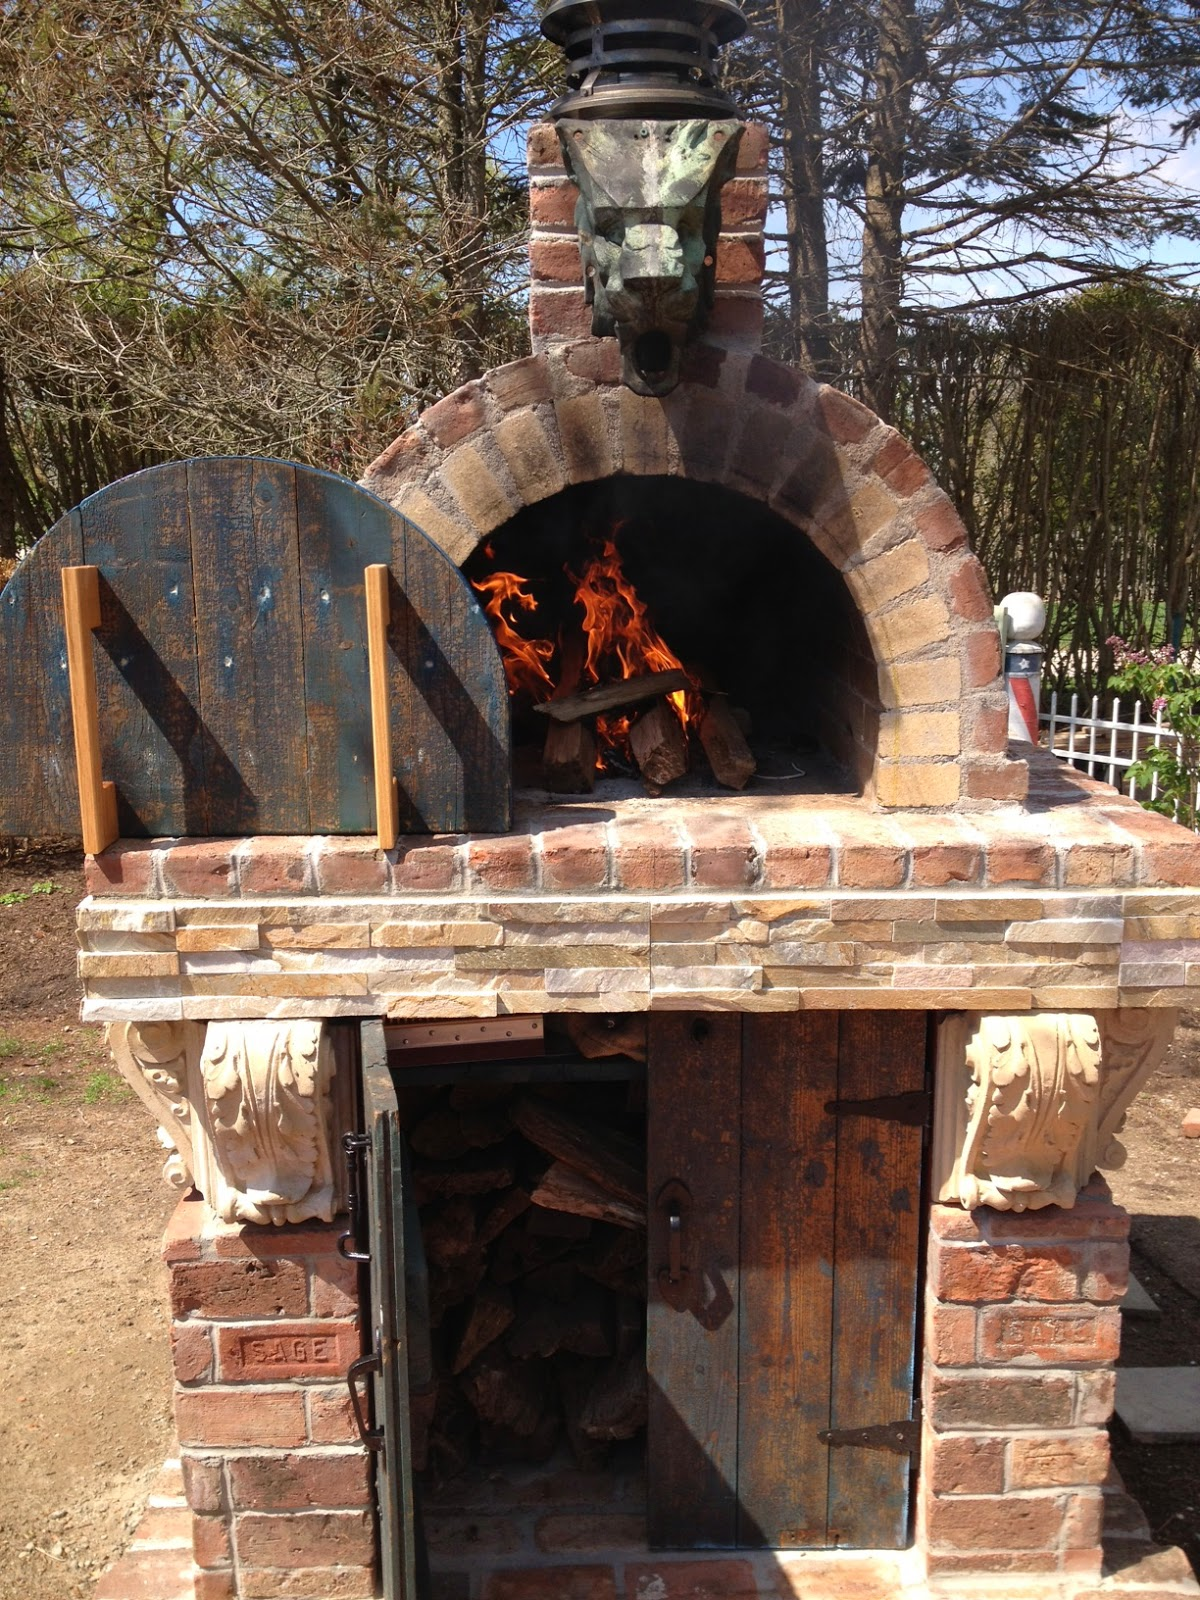 pizza oven diy brick instructions easy video tutorial barbecue